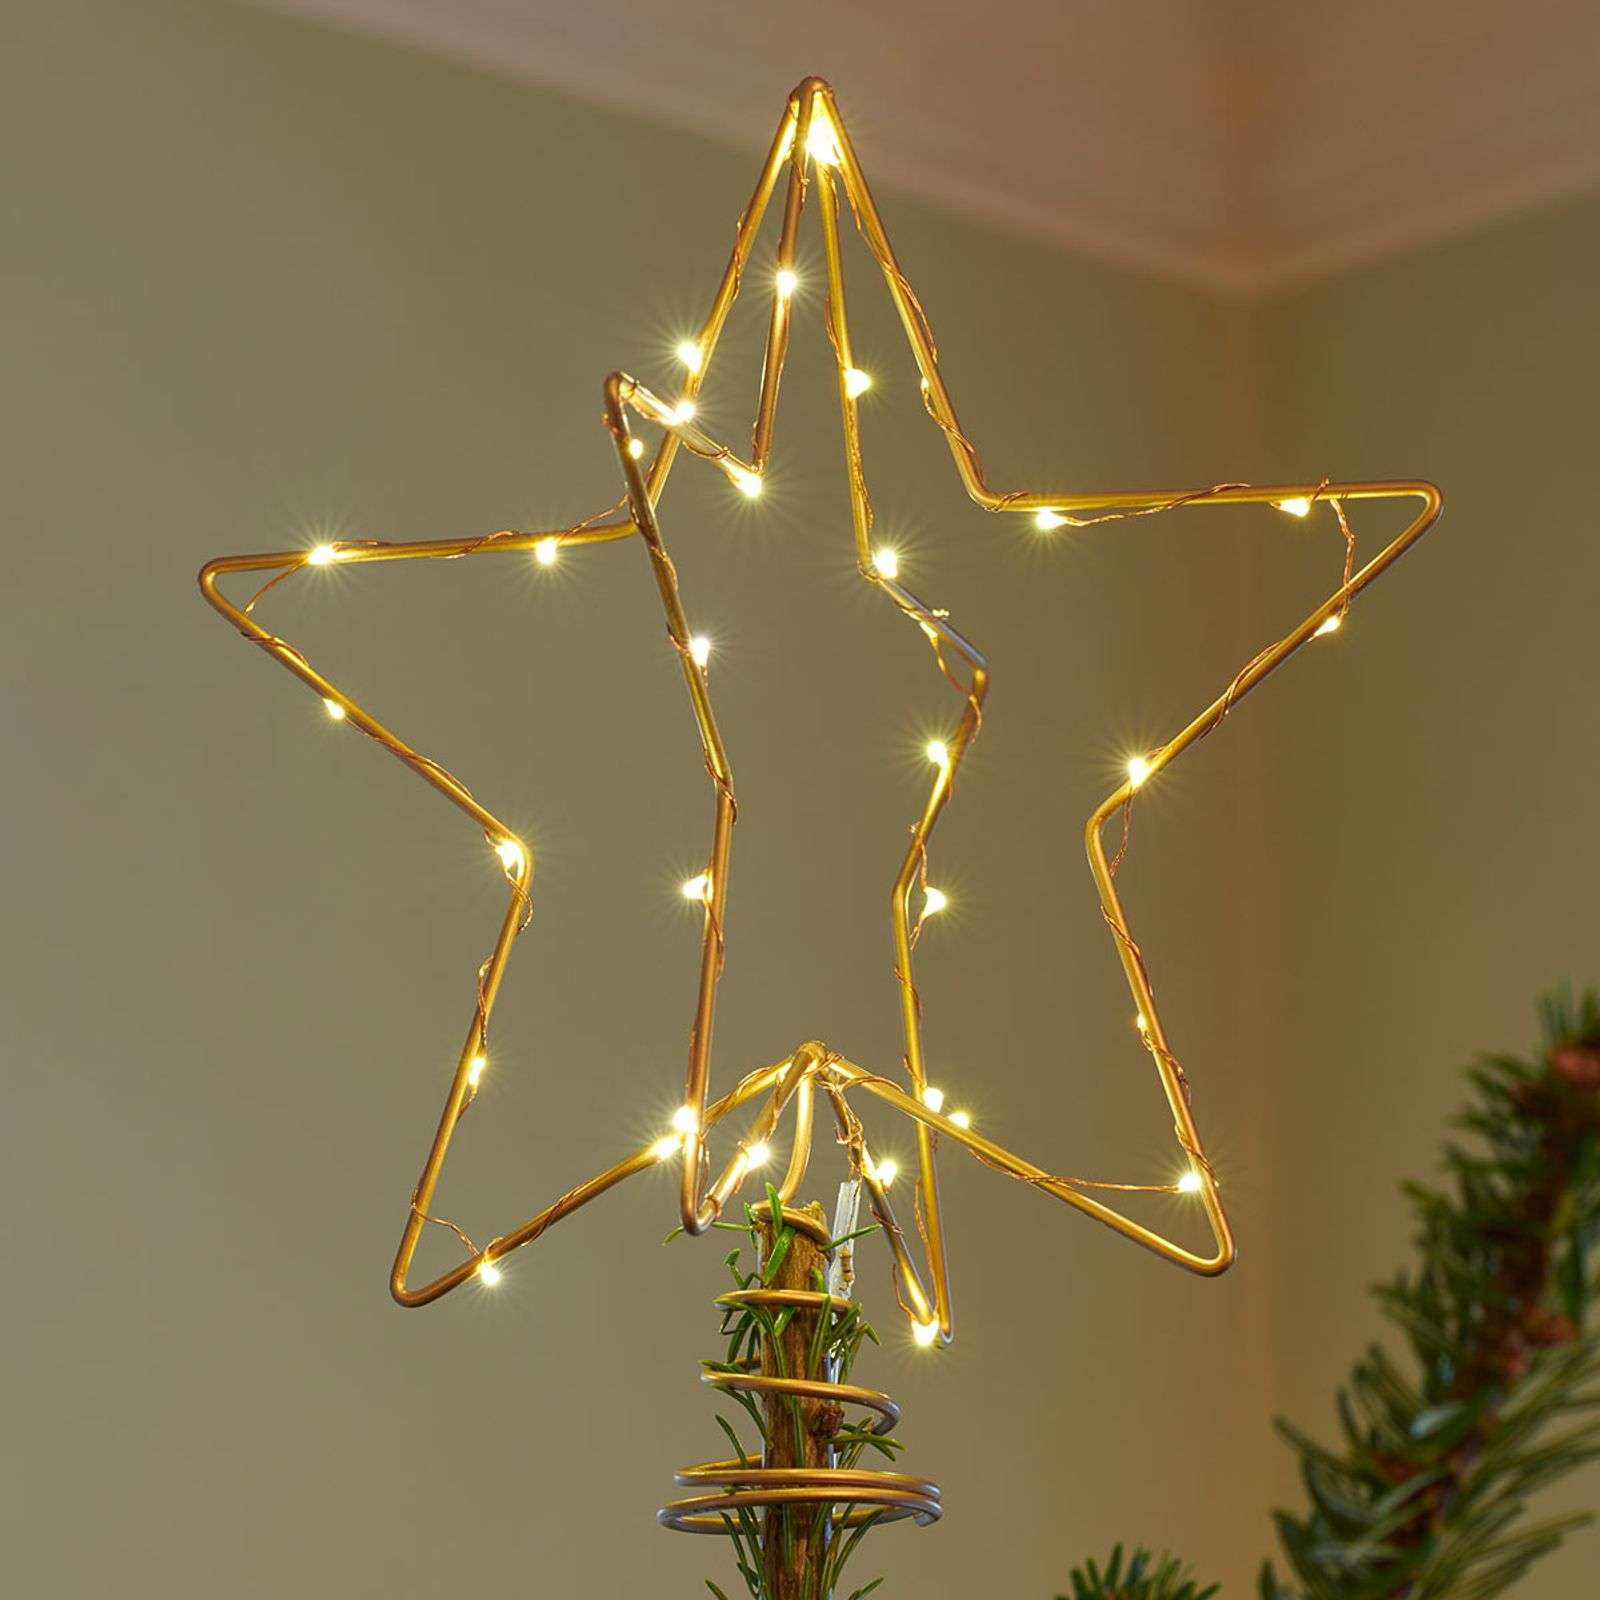 Lampada decorativa a LED Christmas Top color oro